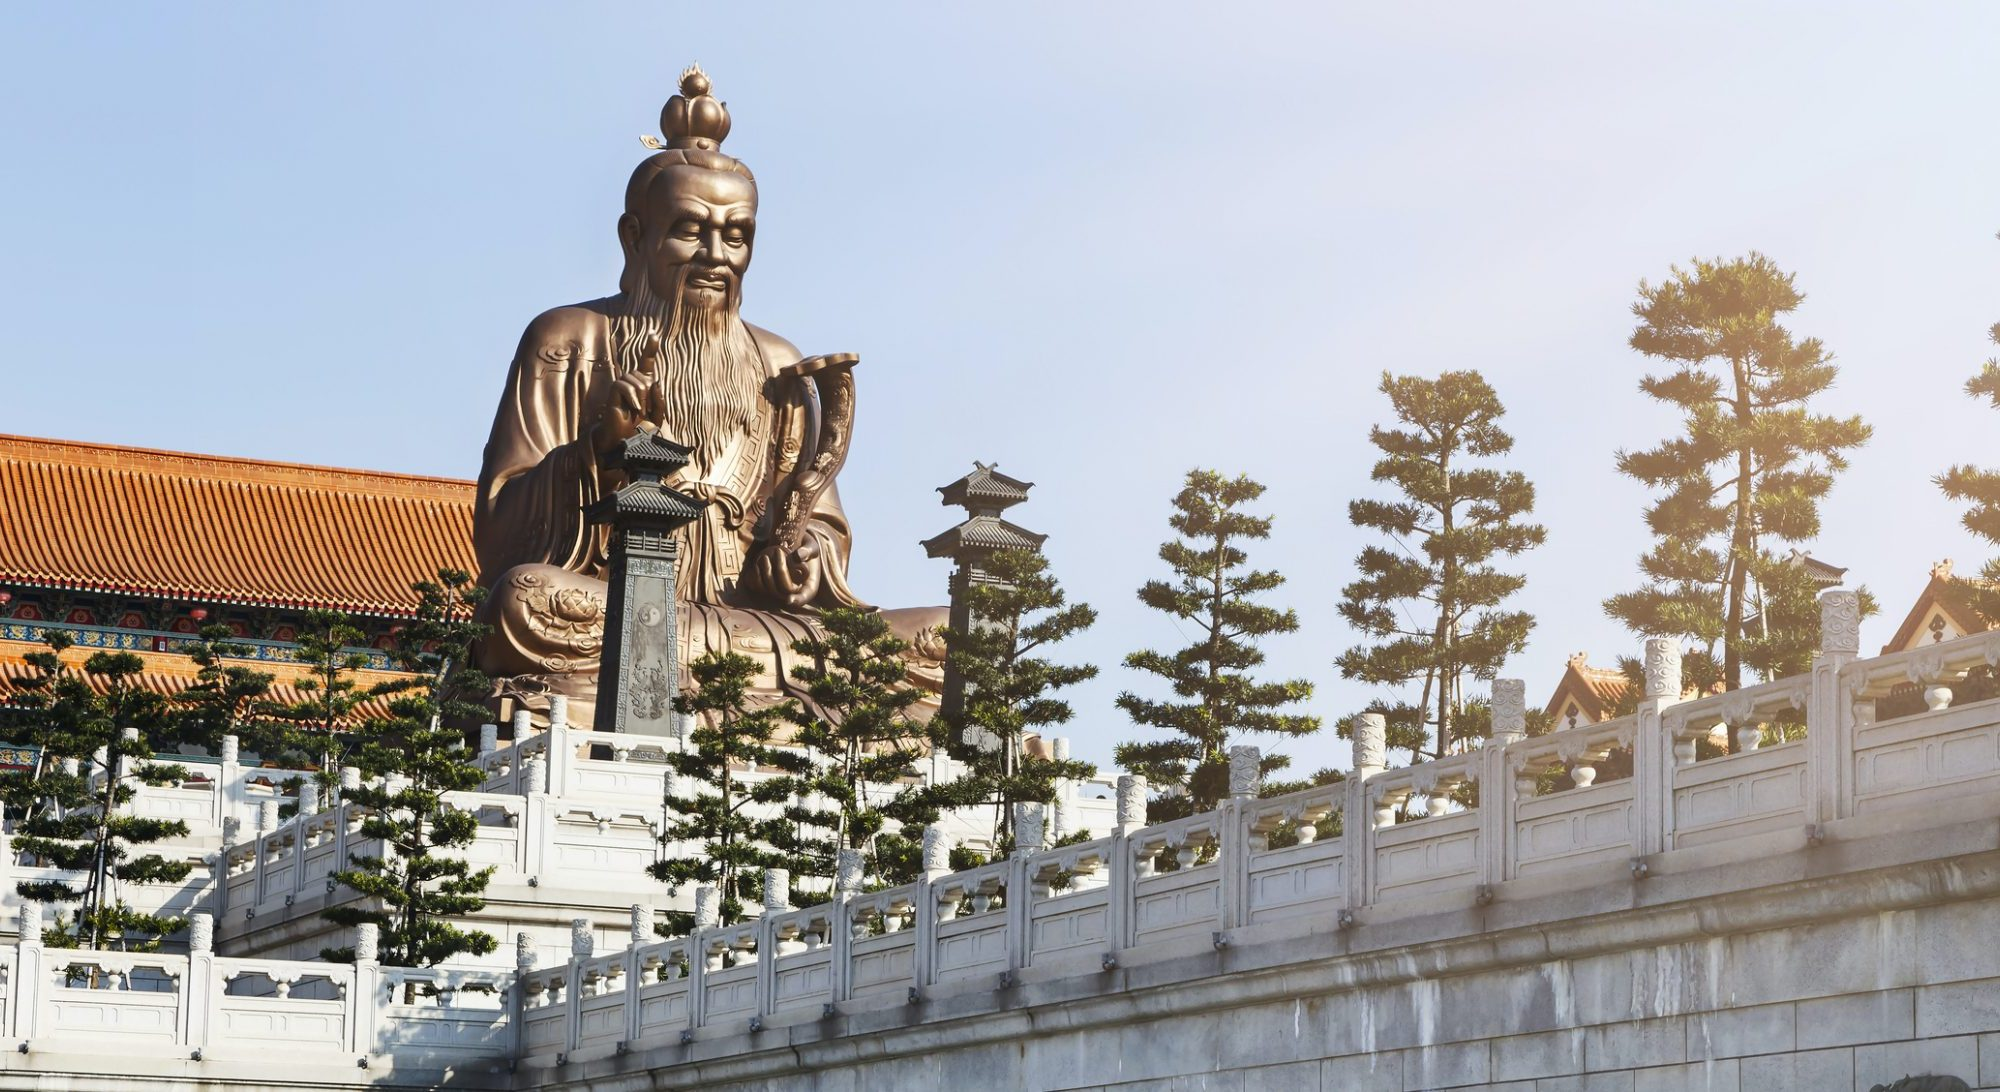 A Chinese statue on top of a temple inspired building in Laozi, China symbolic philosophy of life and leadership